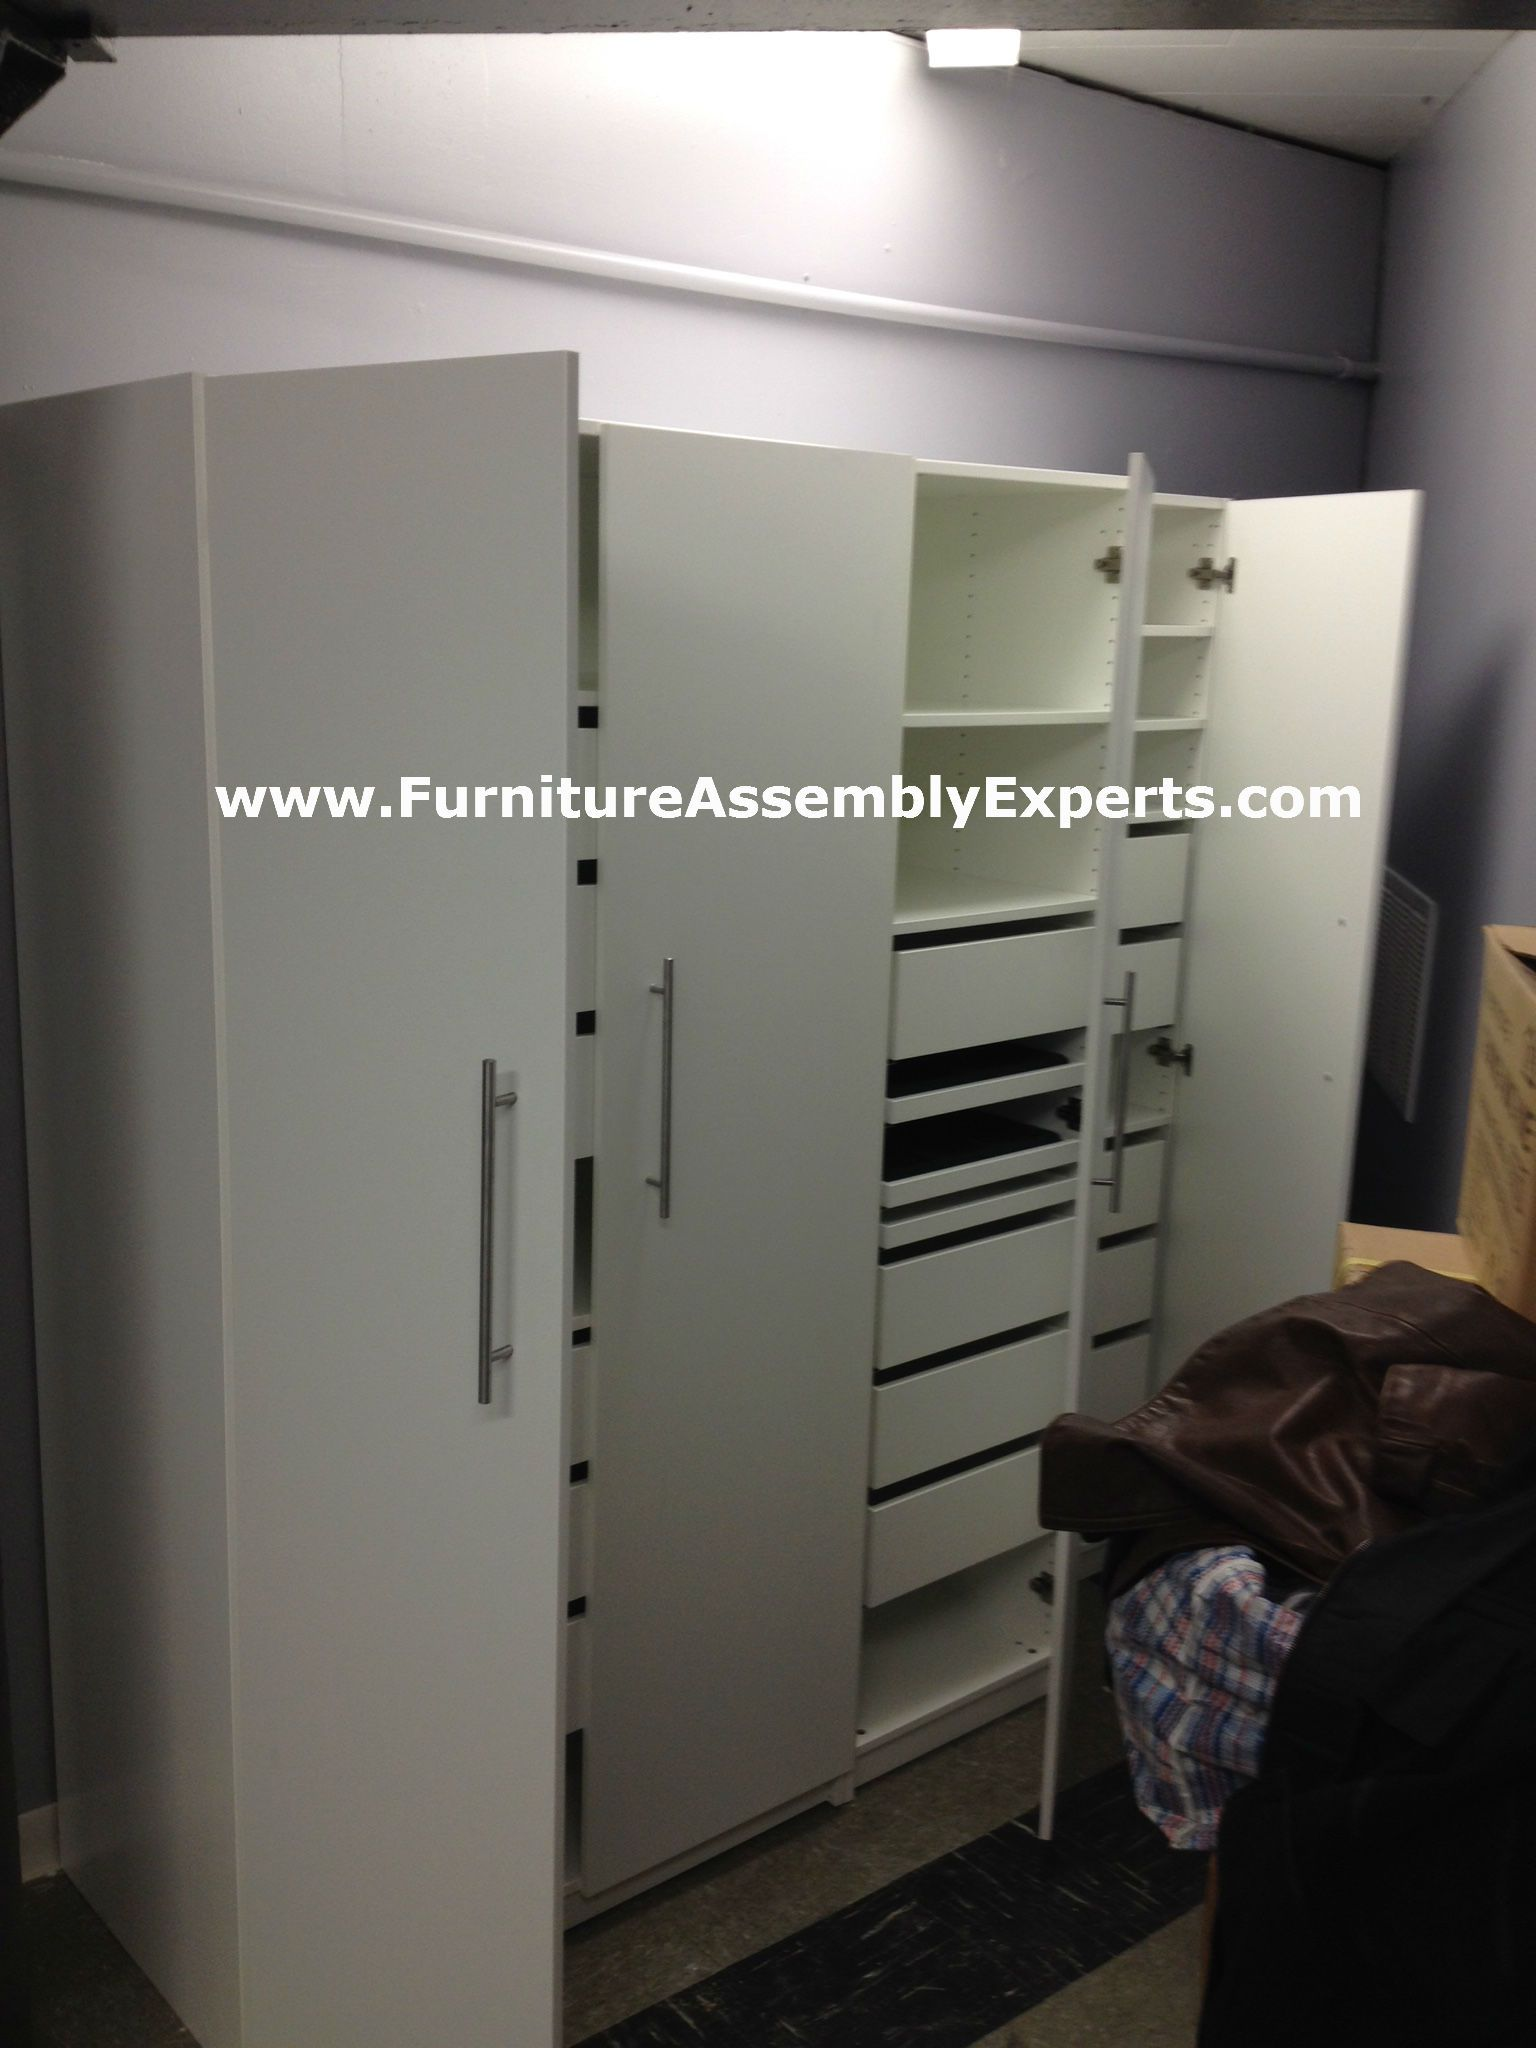 Ikea Pax Wardrobe With Regular Doors And Drawers Embled In Owing Mills Md By Furniture Embly Experts Llc